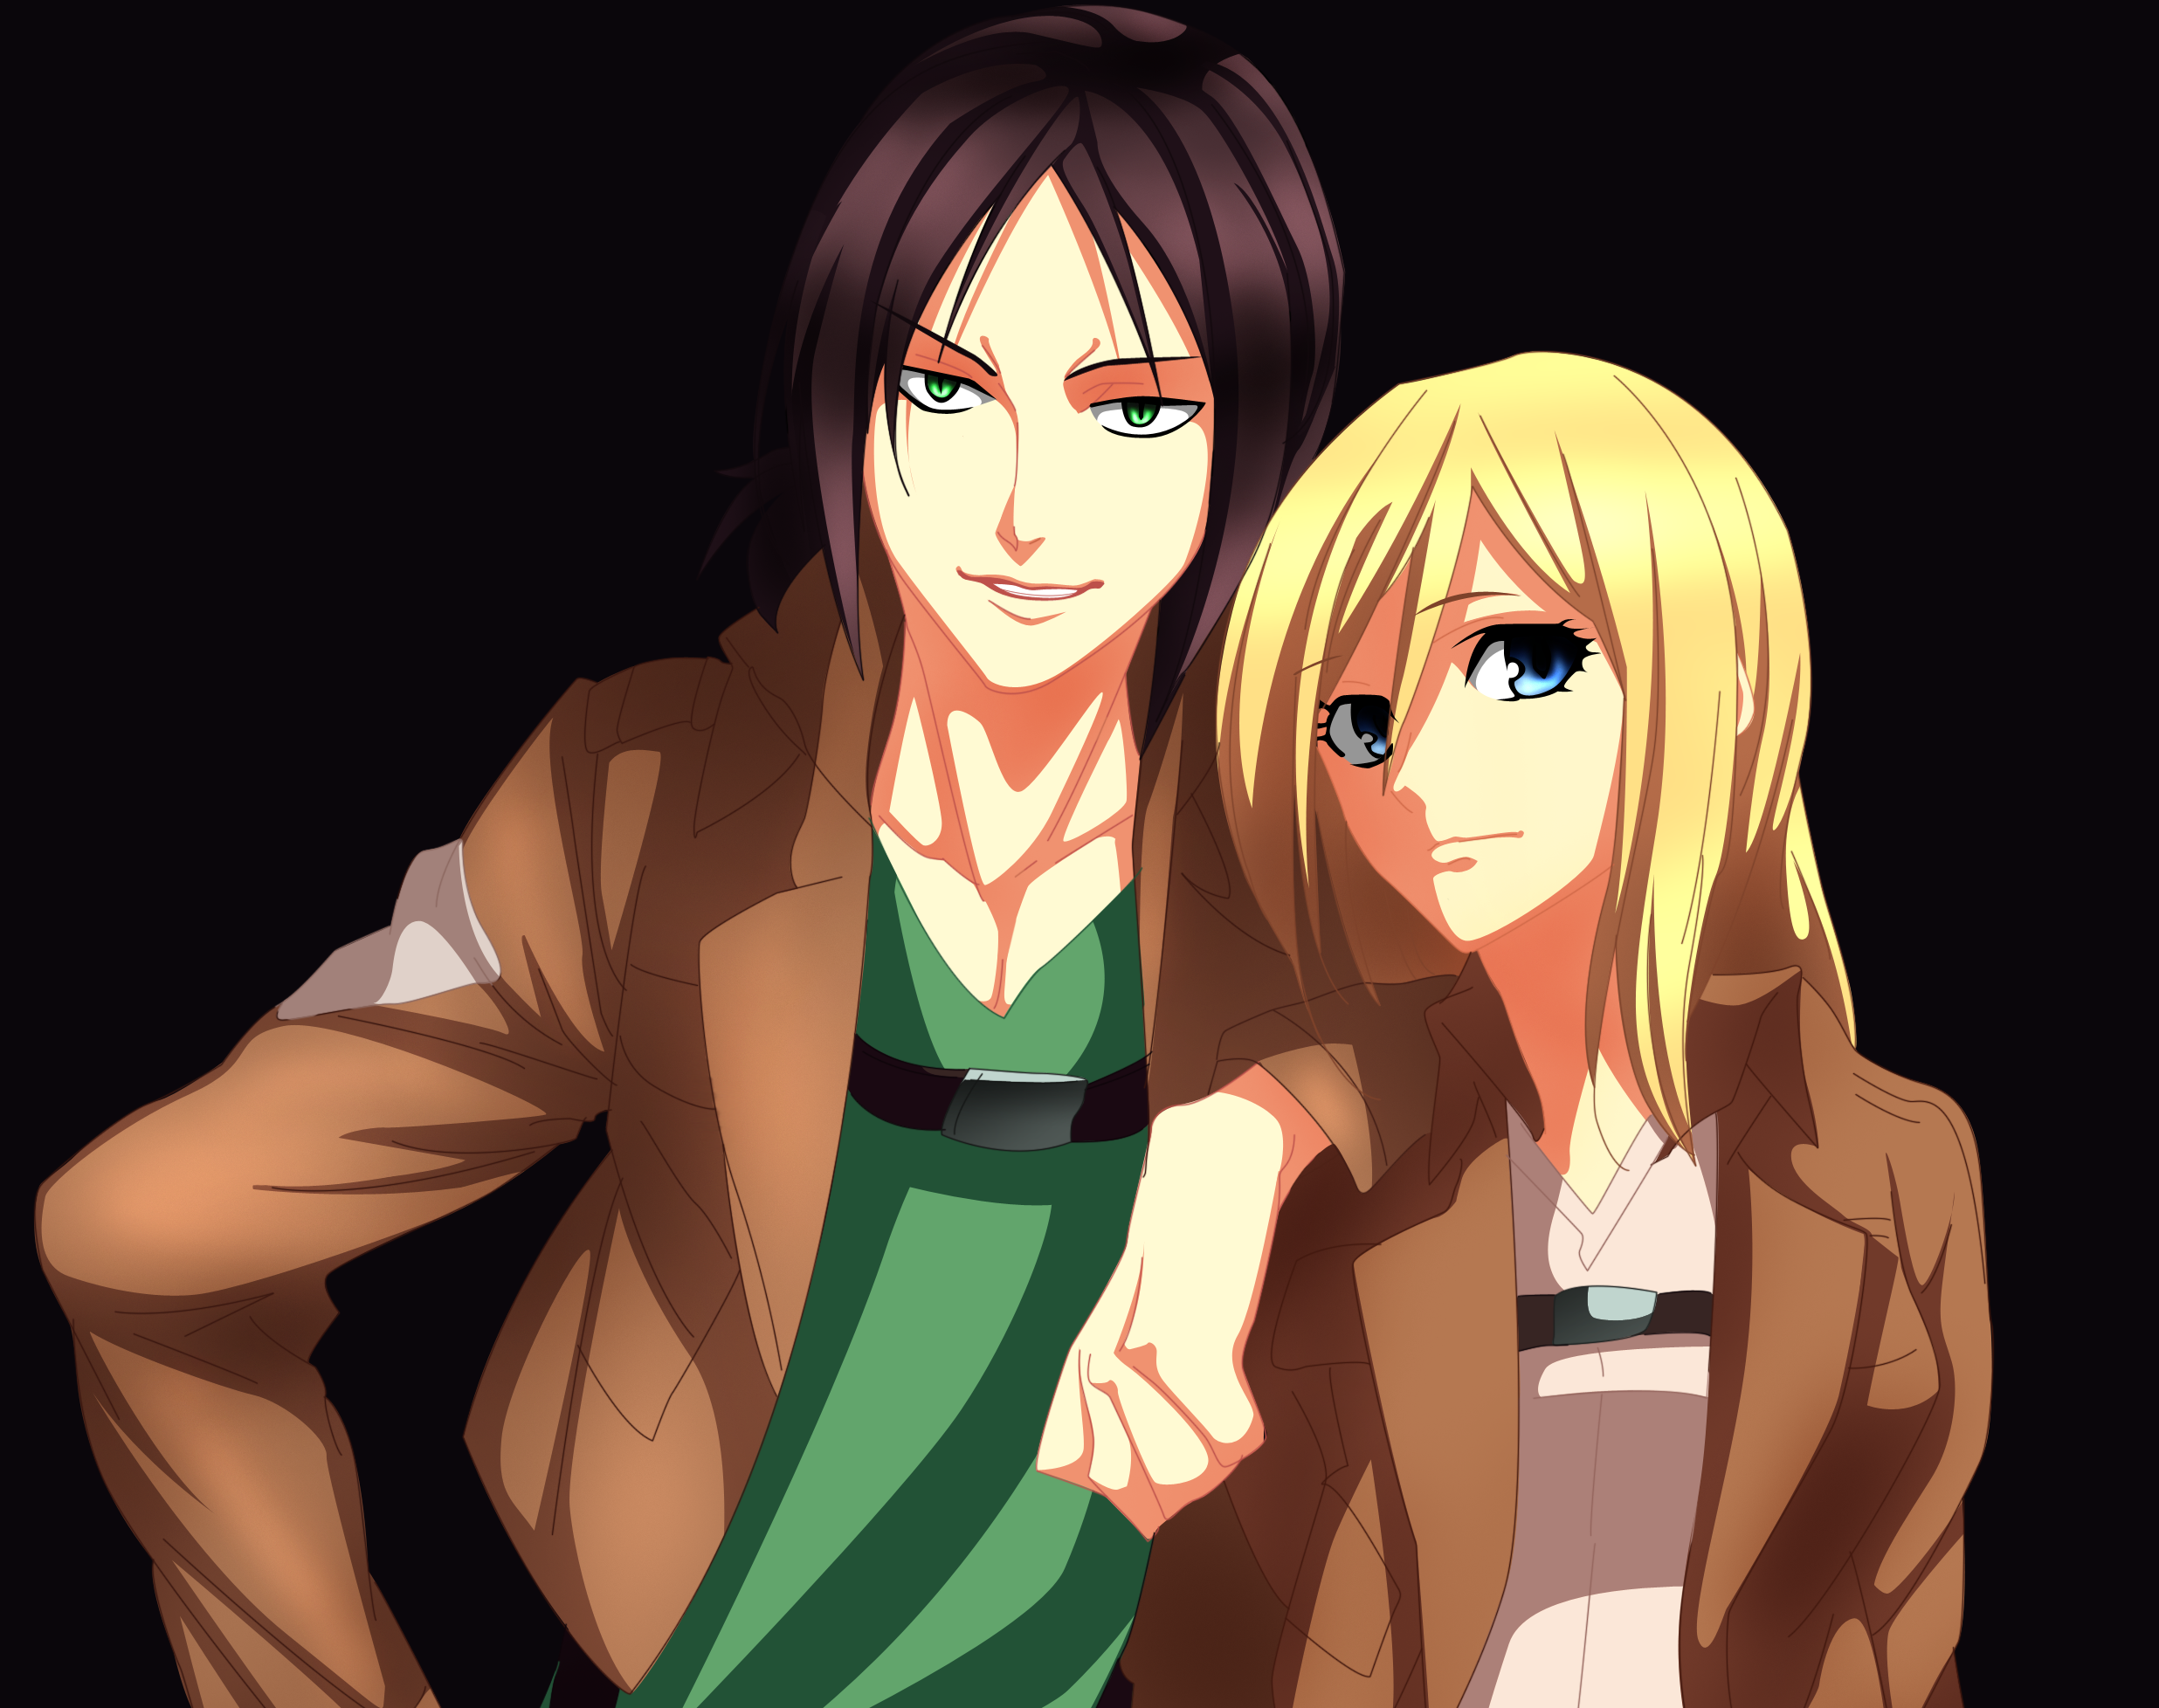 Ymir Historia Reiss Wallpaper And Background Ymir X Krista Deviantart 1122772 Hd Wallpaper Backgrounds Download